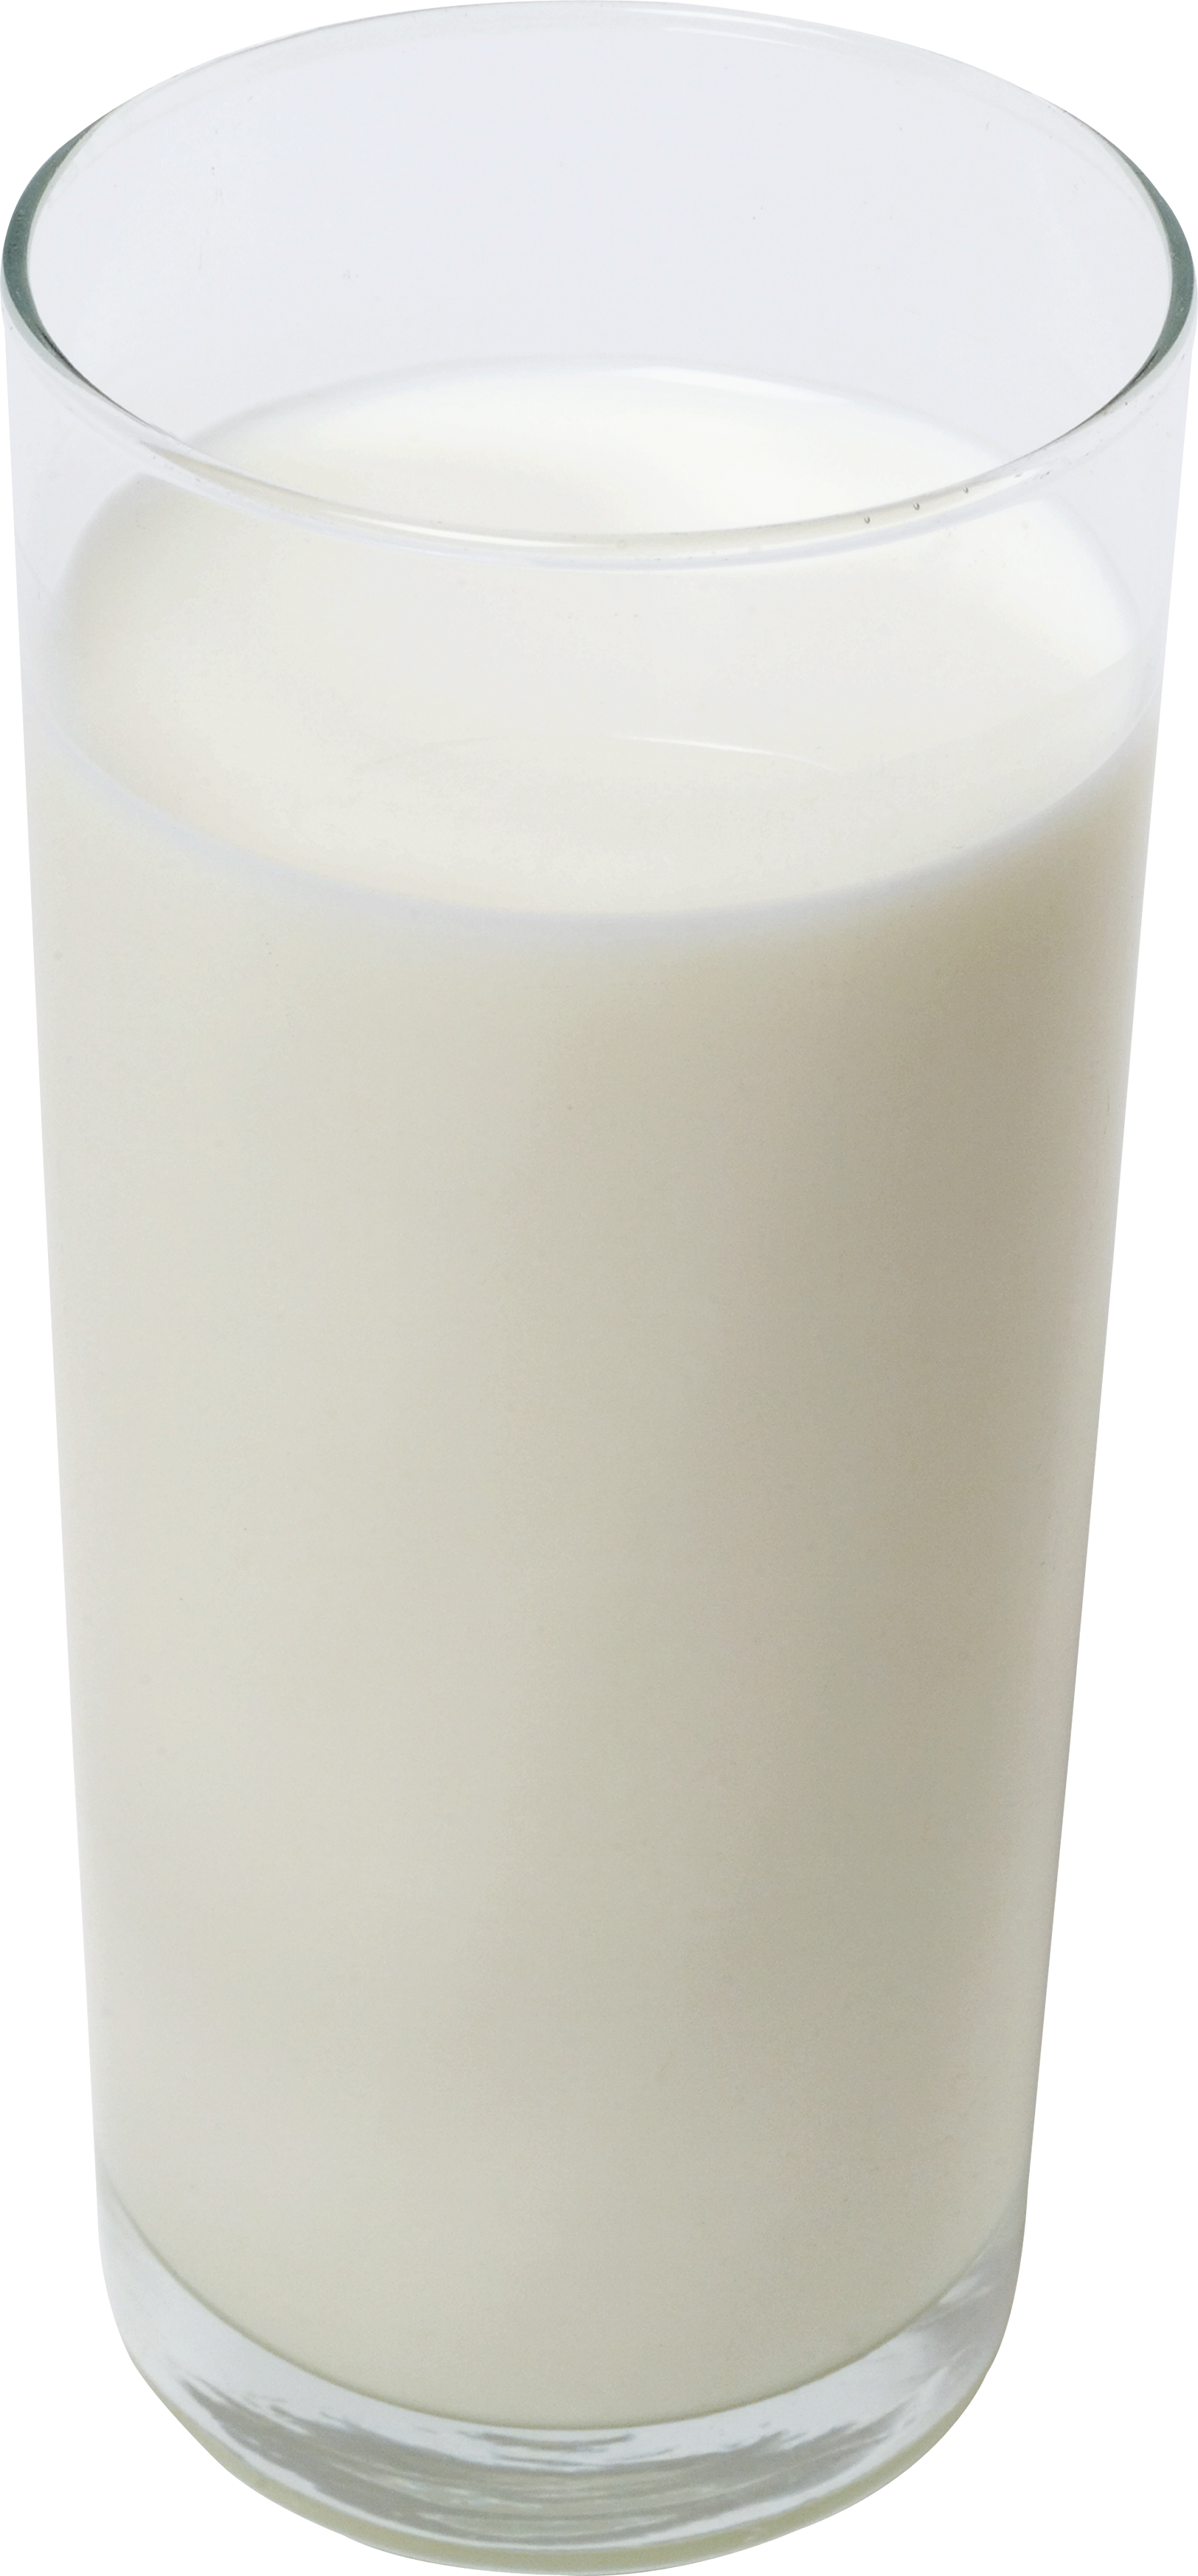 Milk glass png.